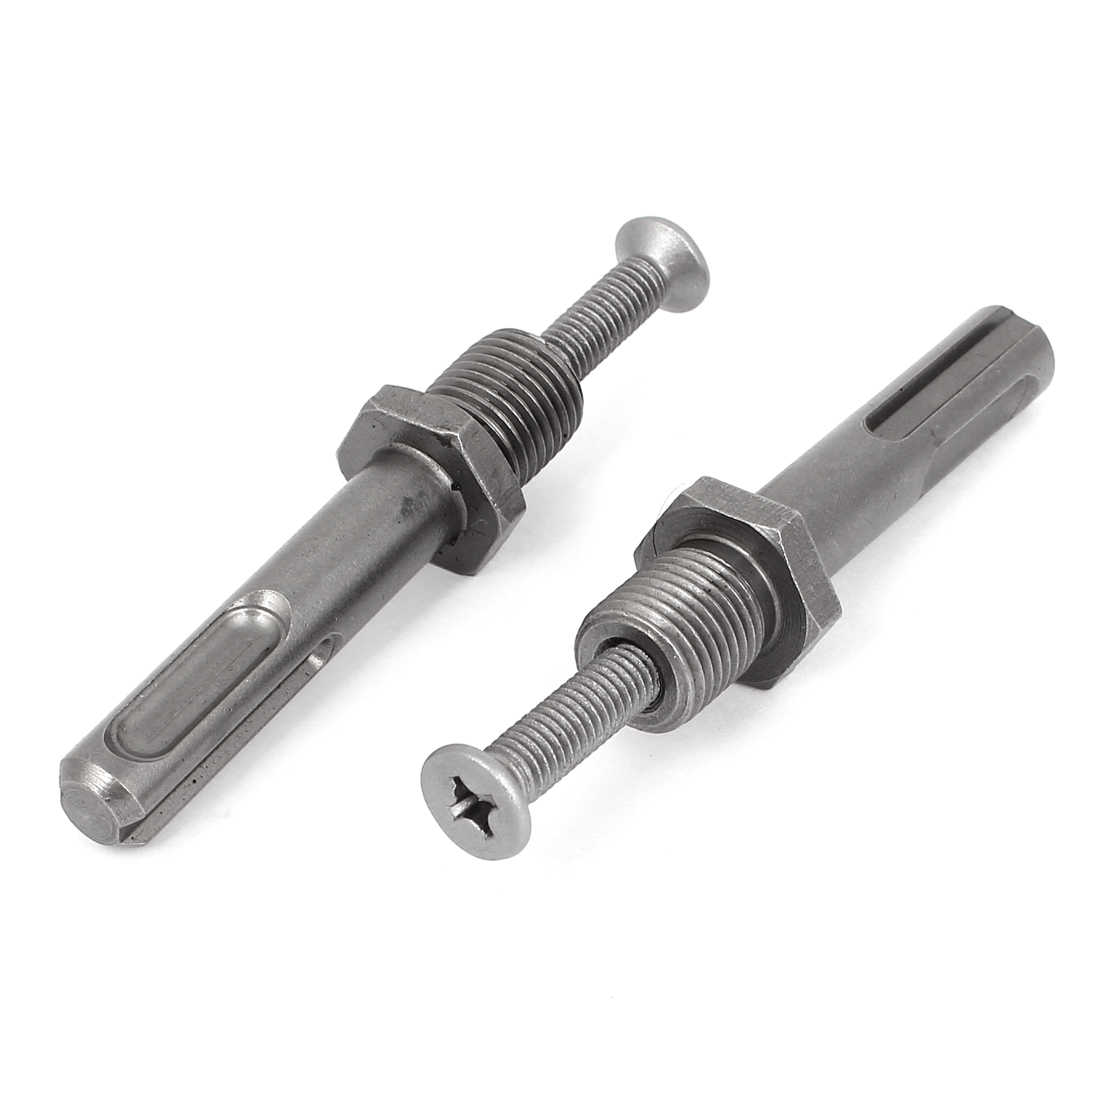 Unique Bargains 2 Pcs Power Tool SDS Plus Shank 1/2'-20UNF Thread Drill Chuck Adapter w Screw